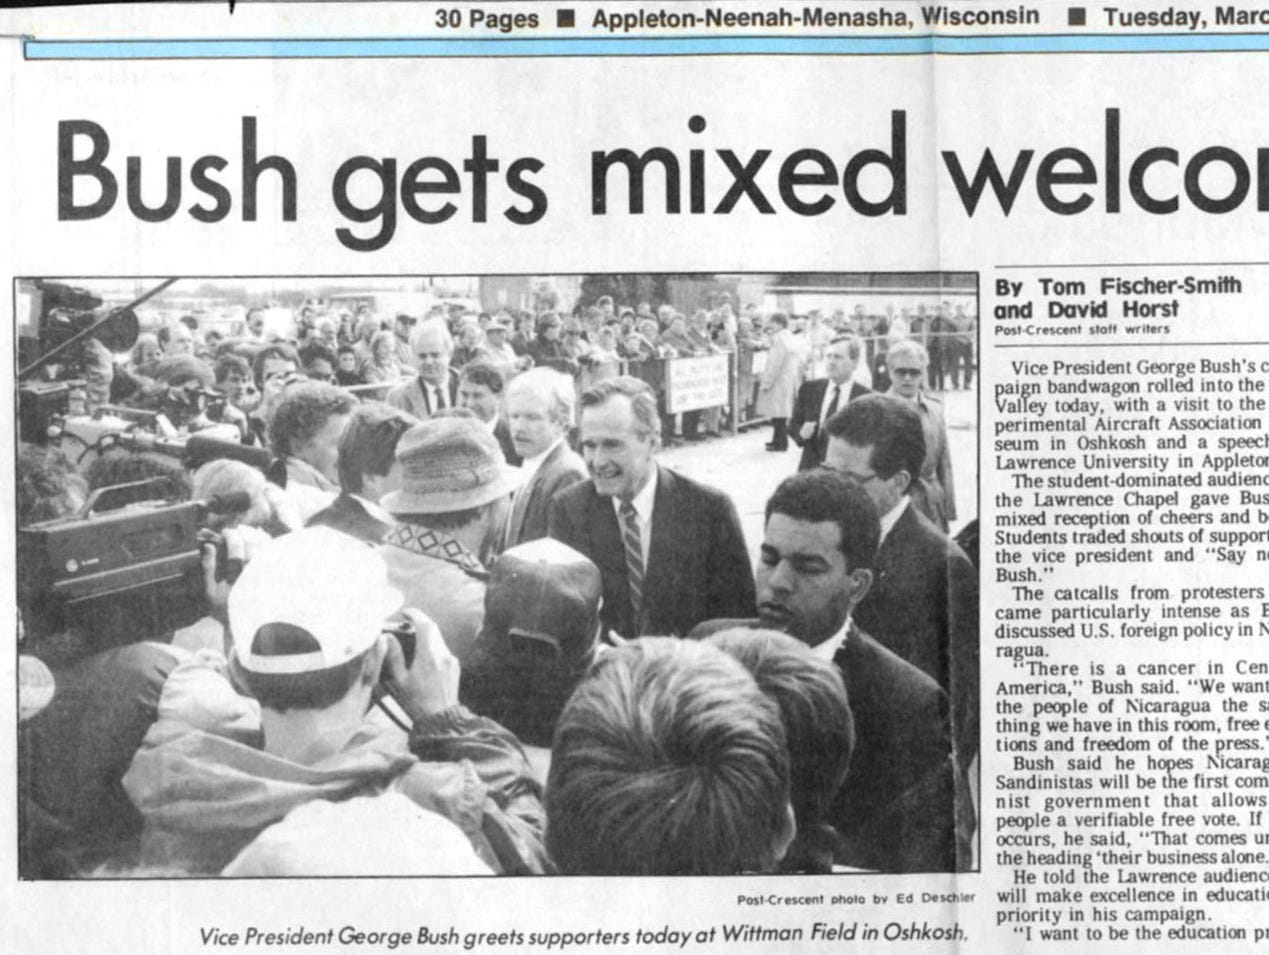 March 29, 1988. Vice president George H. W. Bush gets mixed welcome in Valley article by Tom Fischer-Smith and David Horst in The Post-Crescent.